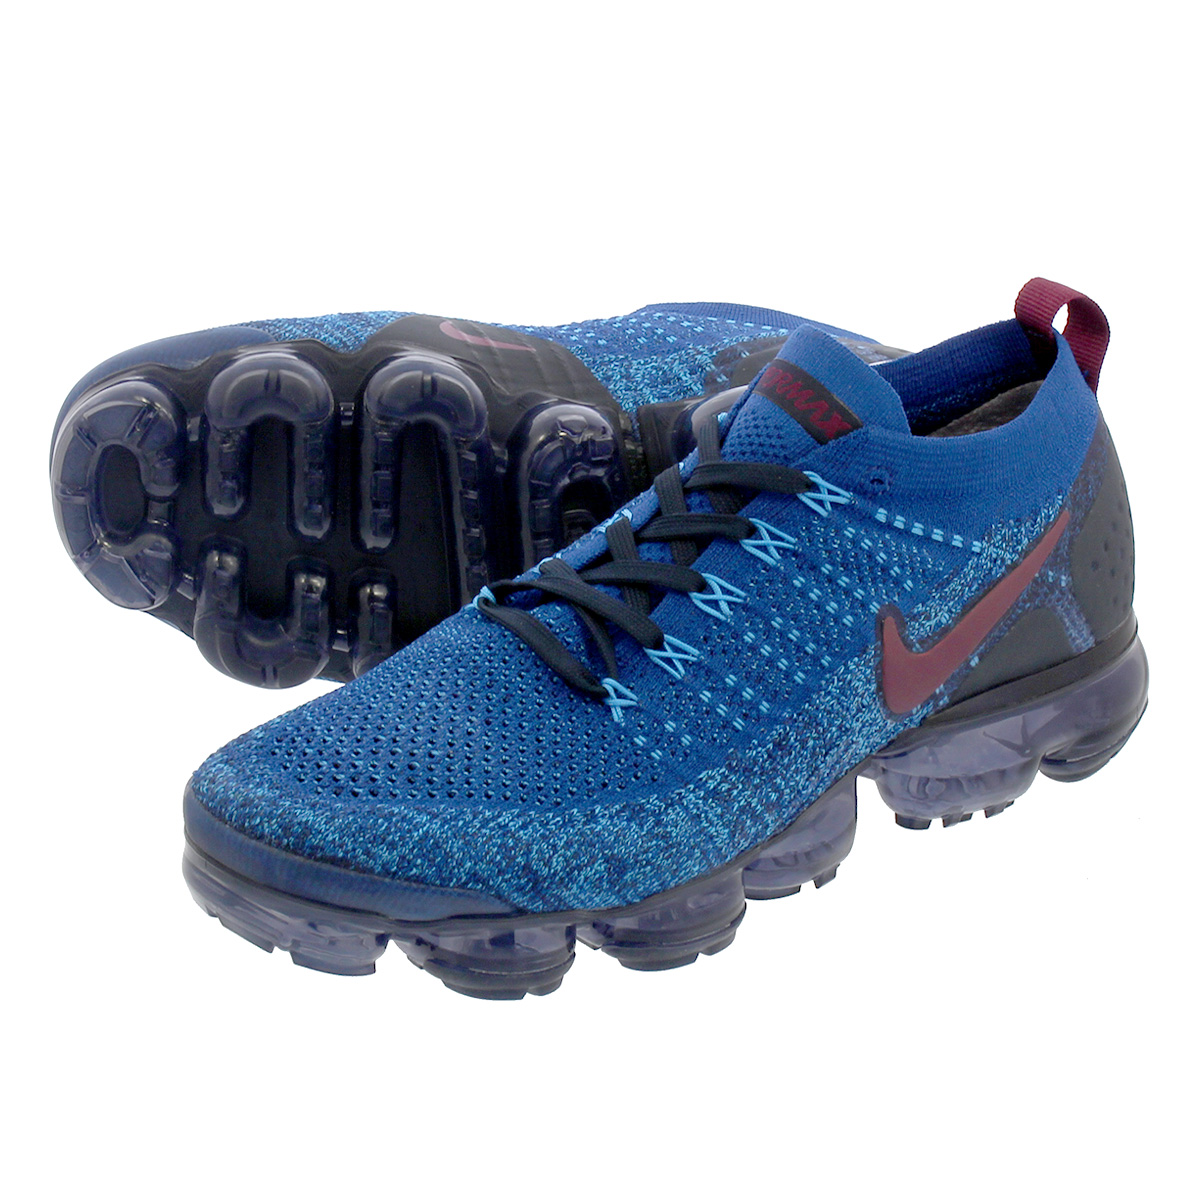 cheap for discount 79490 1eebe NIKE AIR VAPORMAX FLYKNIT 2 Nike vapor max fried food knit 2 GYM  BLUE BORDEAUX COLLEGE NAVY BLUE GLOW 942,842-401